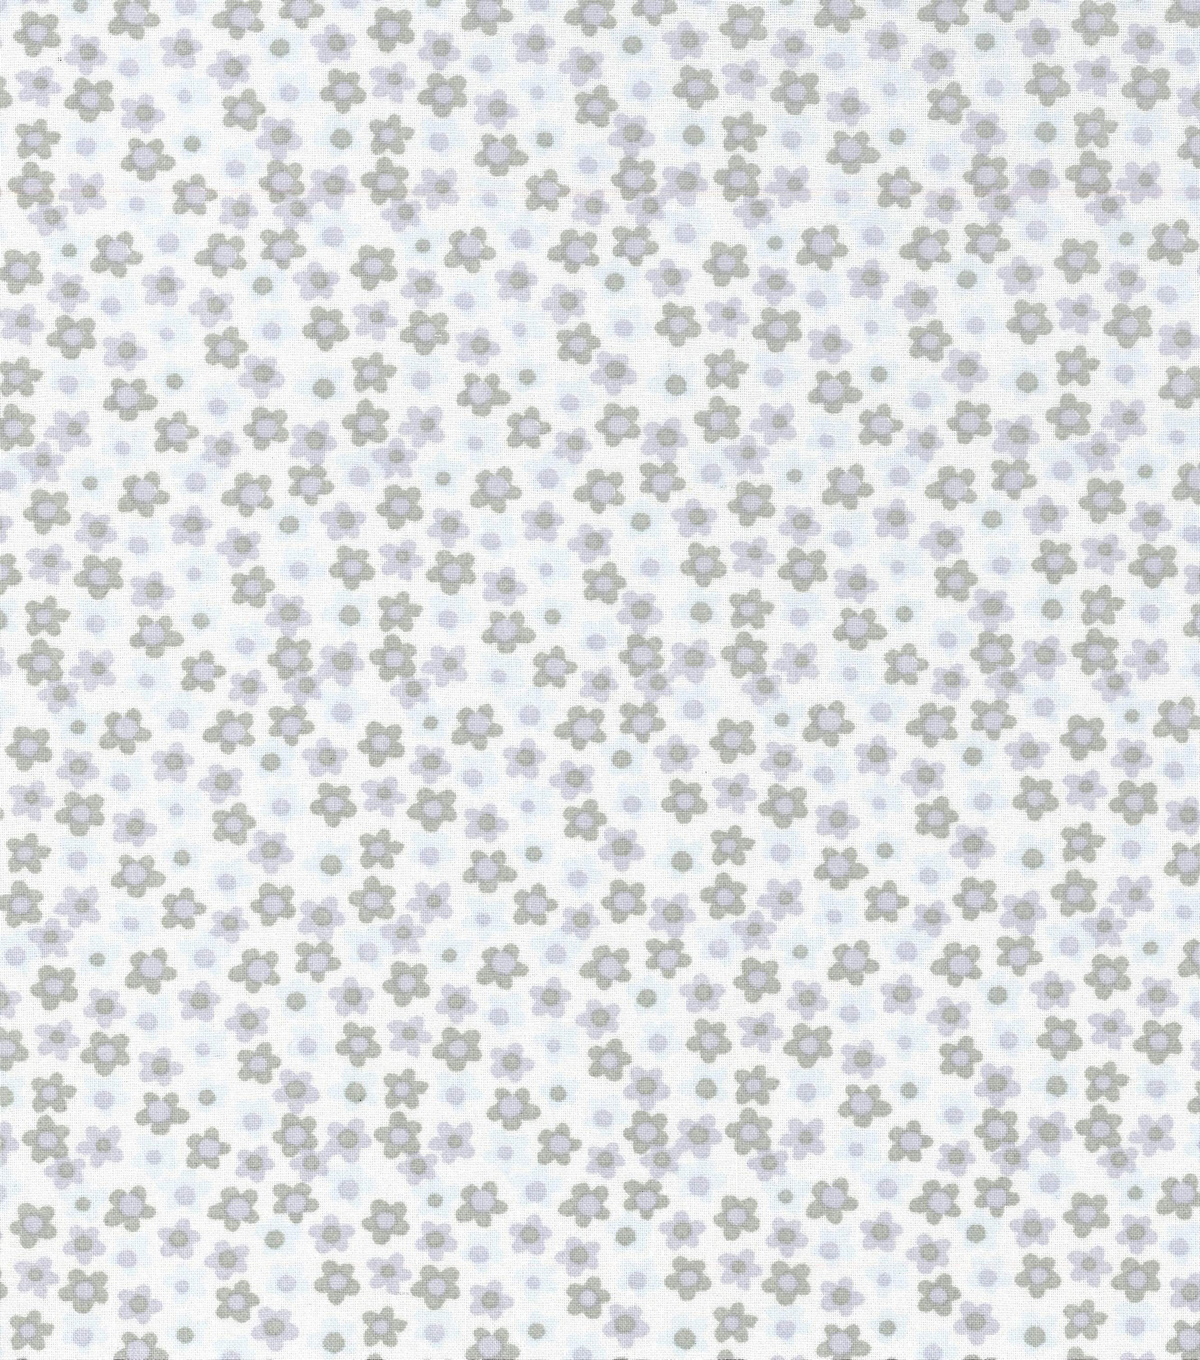 Keepsake Calico Cotton Fabric-Tiny Floral on White